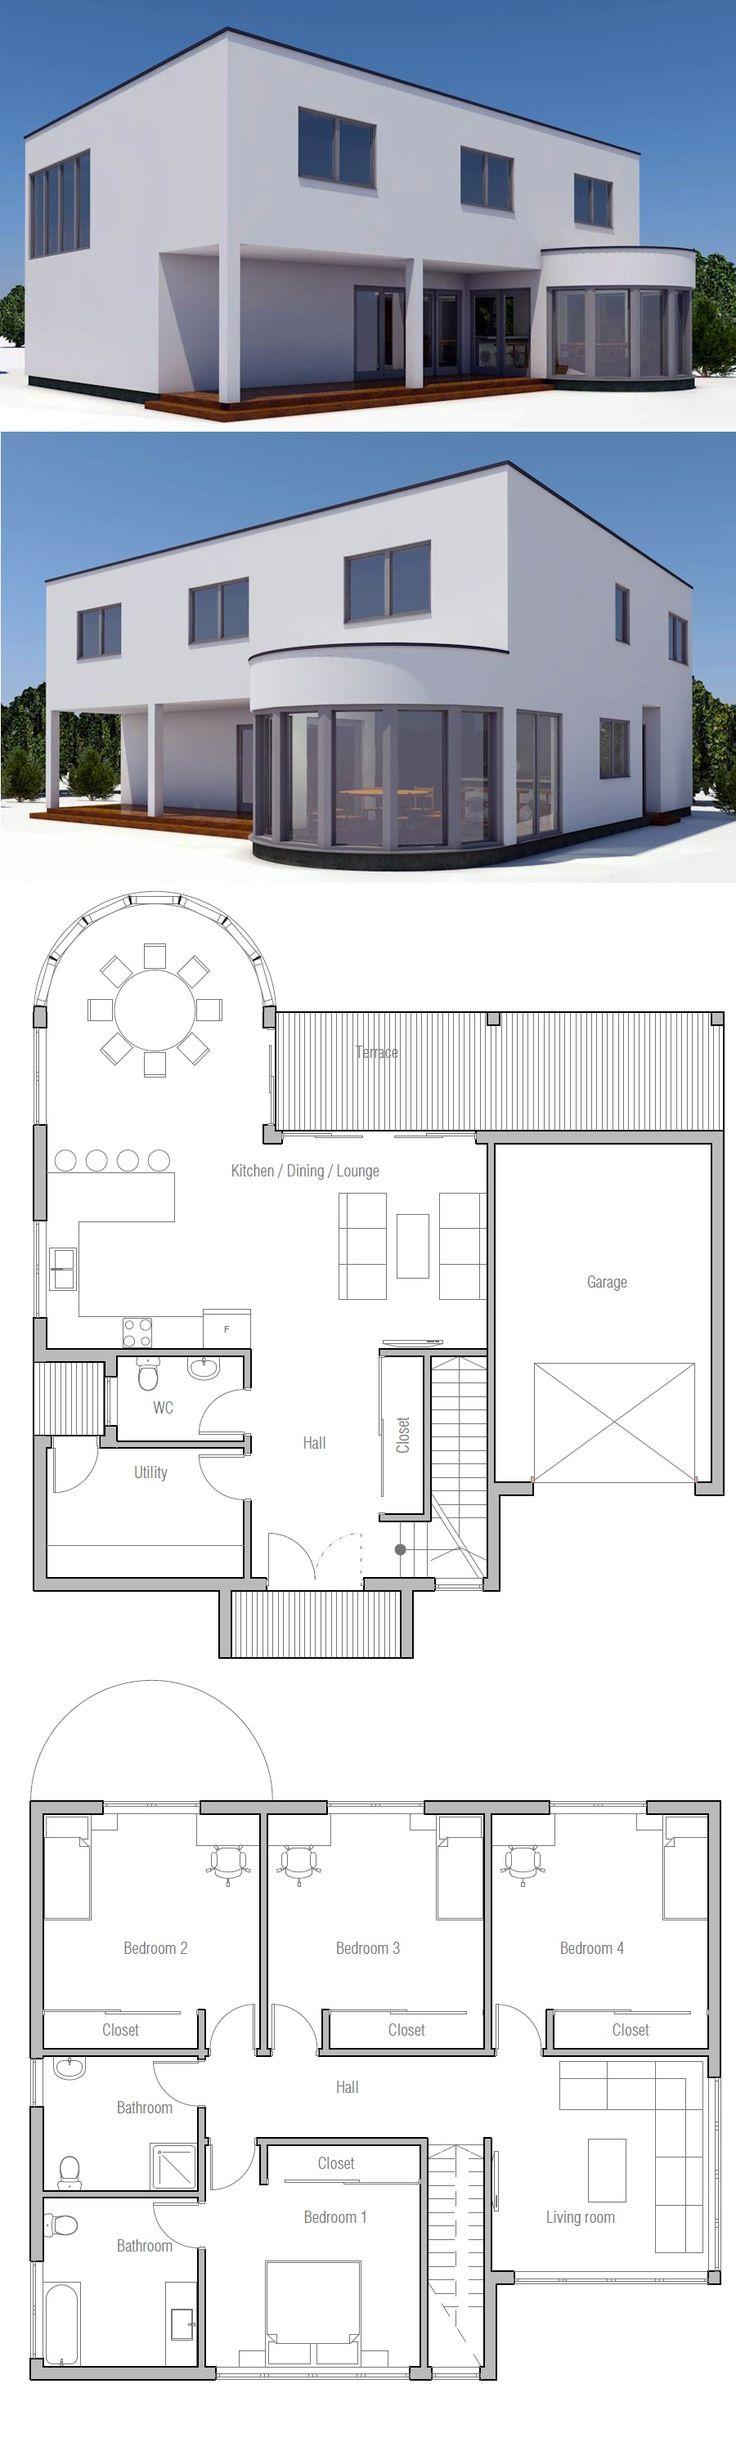 Remarkable House Plans Blueprints Contemporary Best inspiration